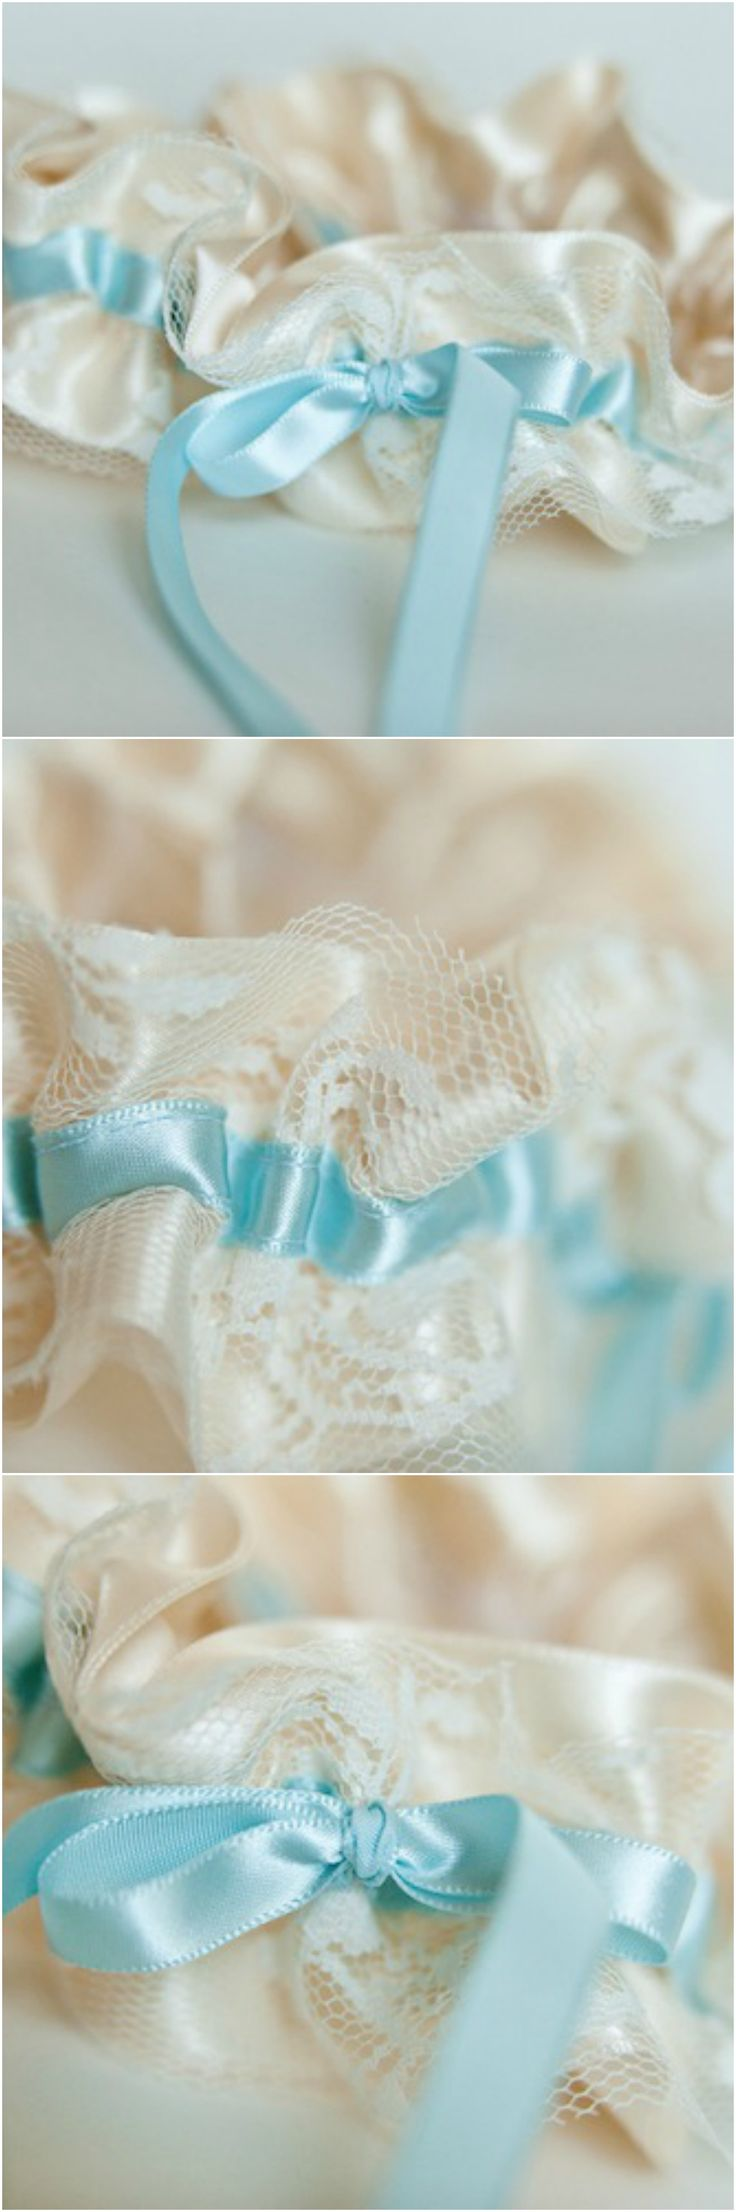 romantic and lace something blue wedding garter by The Garter Girl